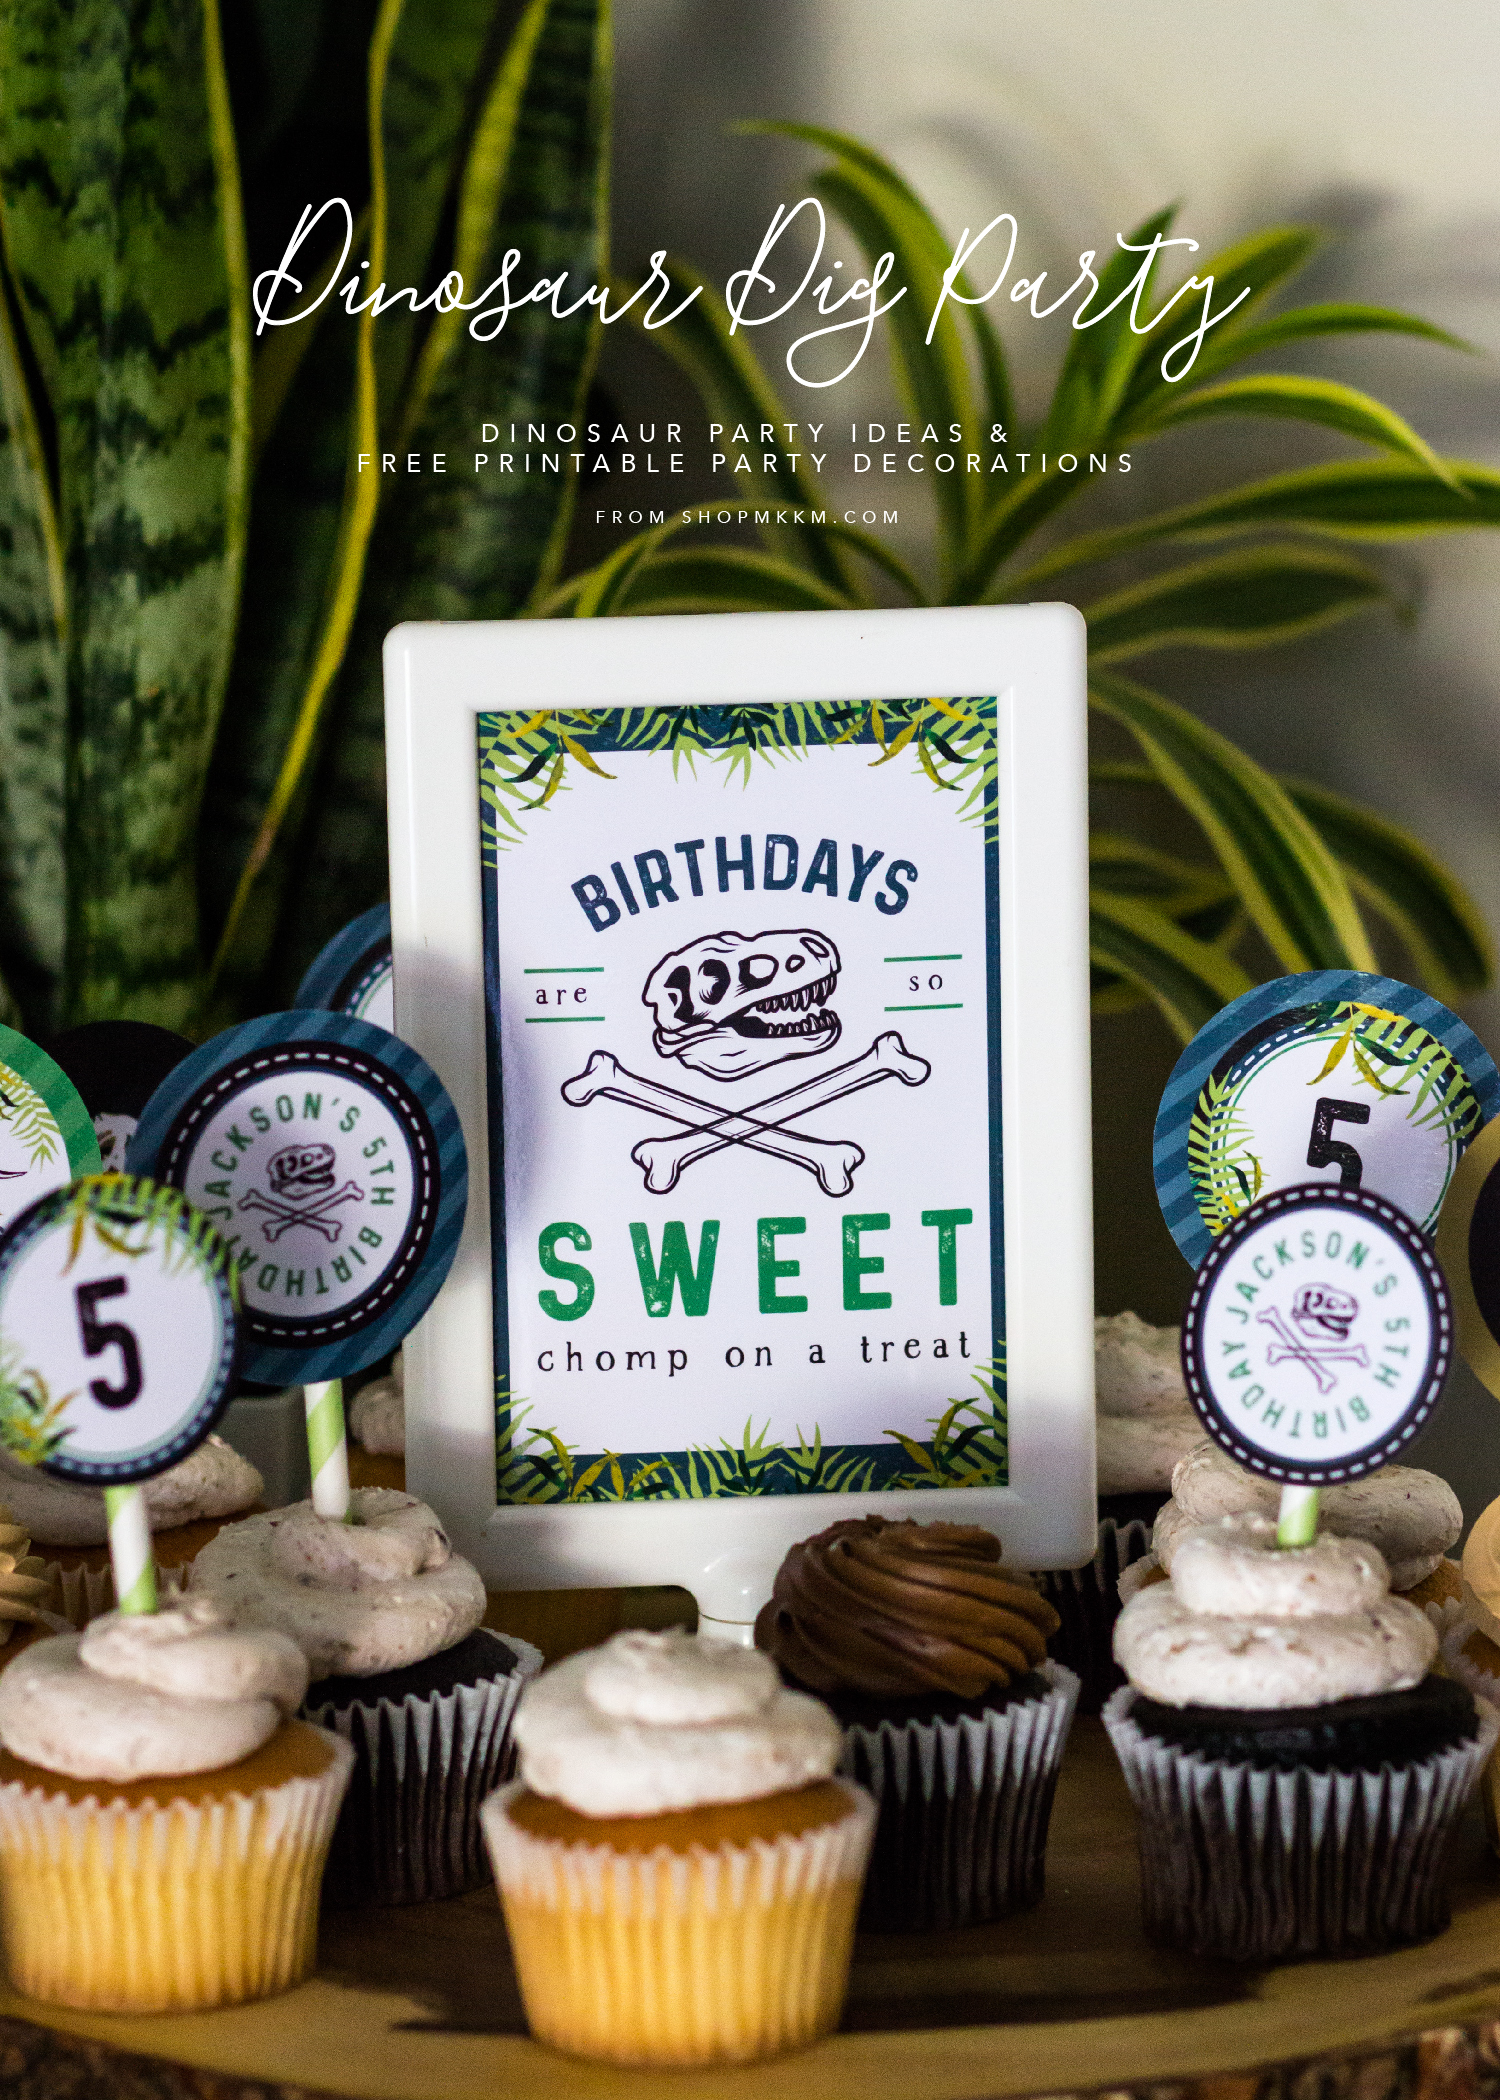 Dinosaur Dig Party Ideas And Free Printables From Shopmkkm